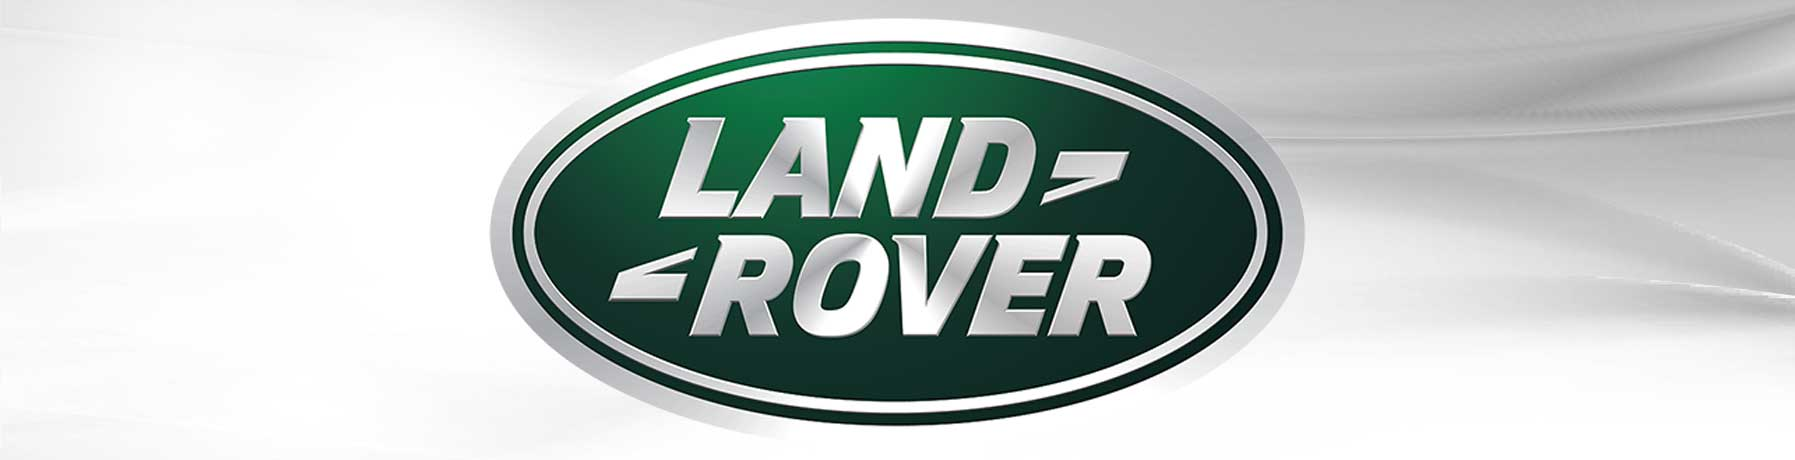 We service land rovers